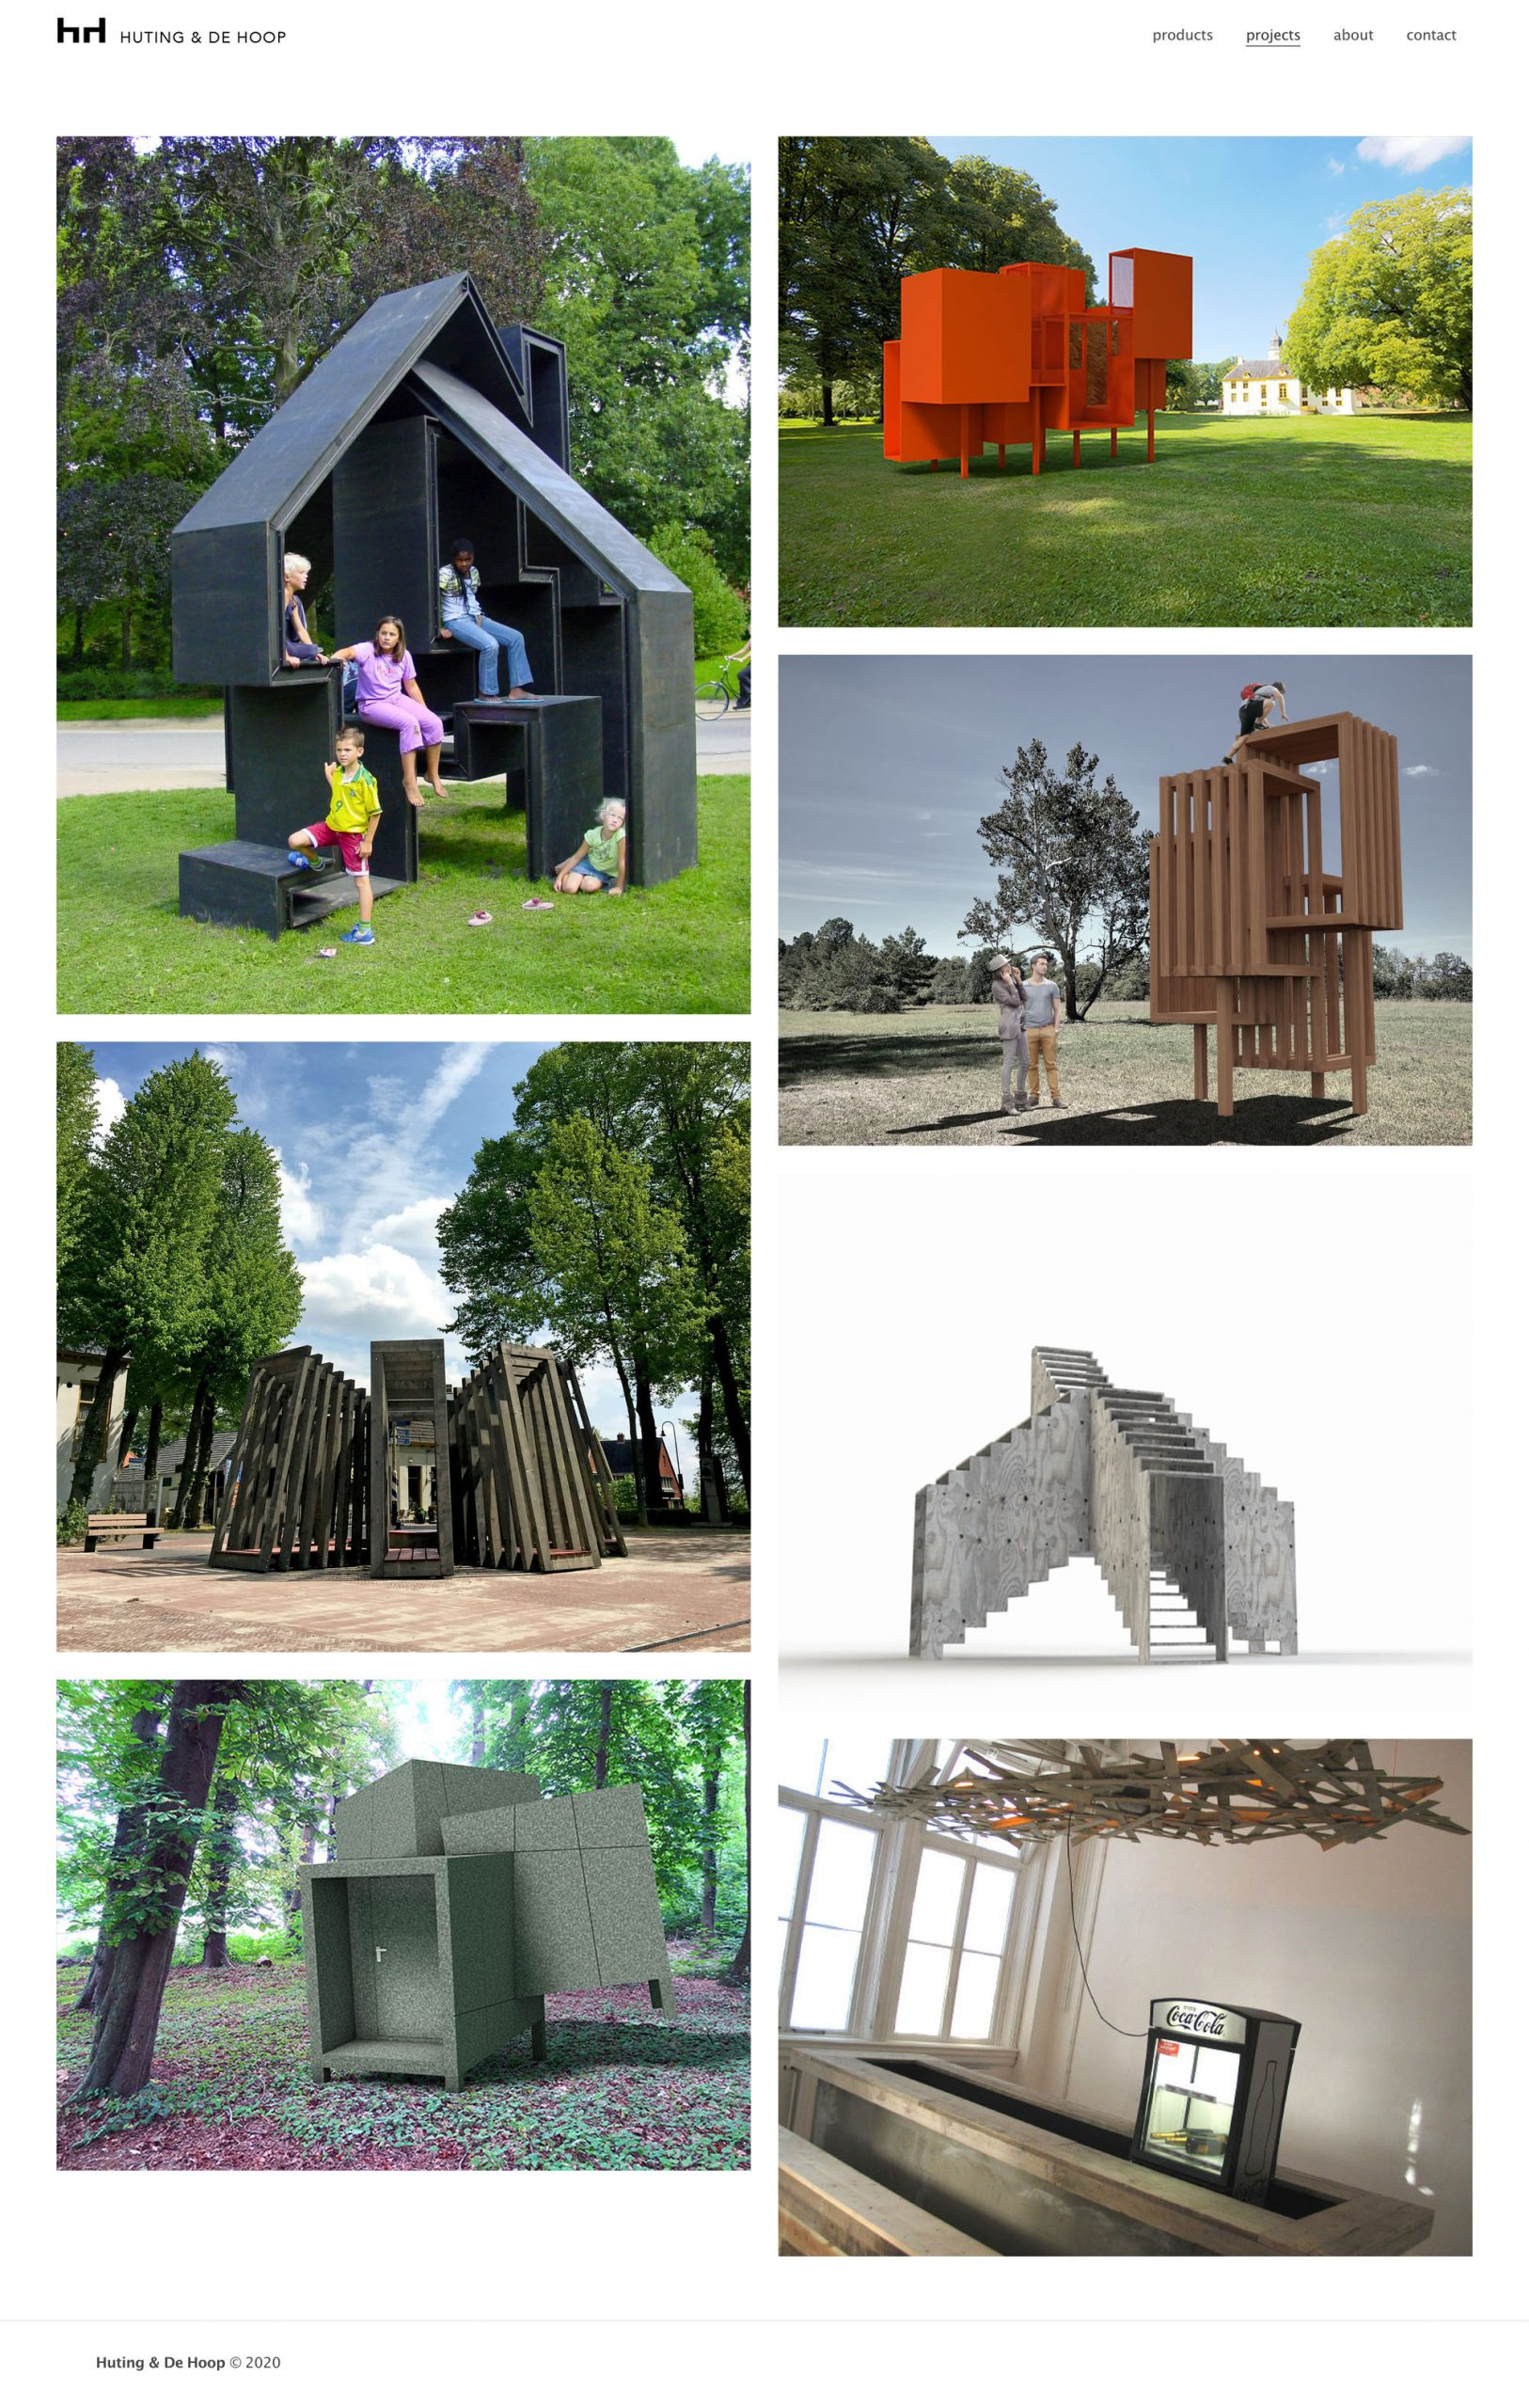 projects HUTING DE HOOP scaled